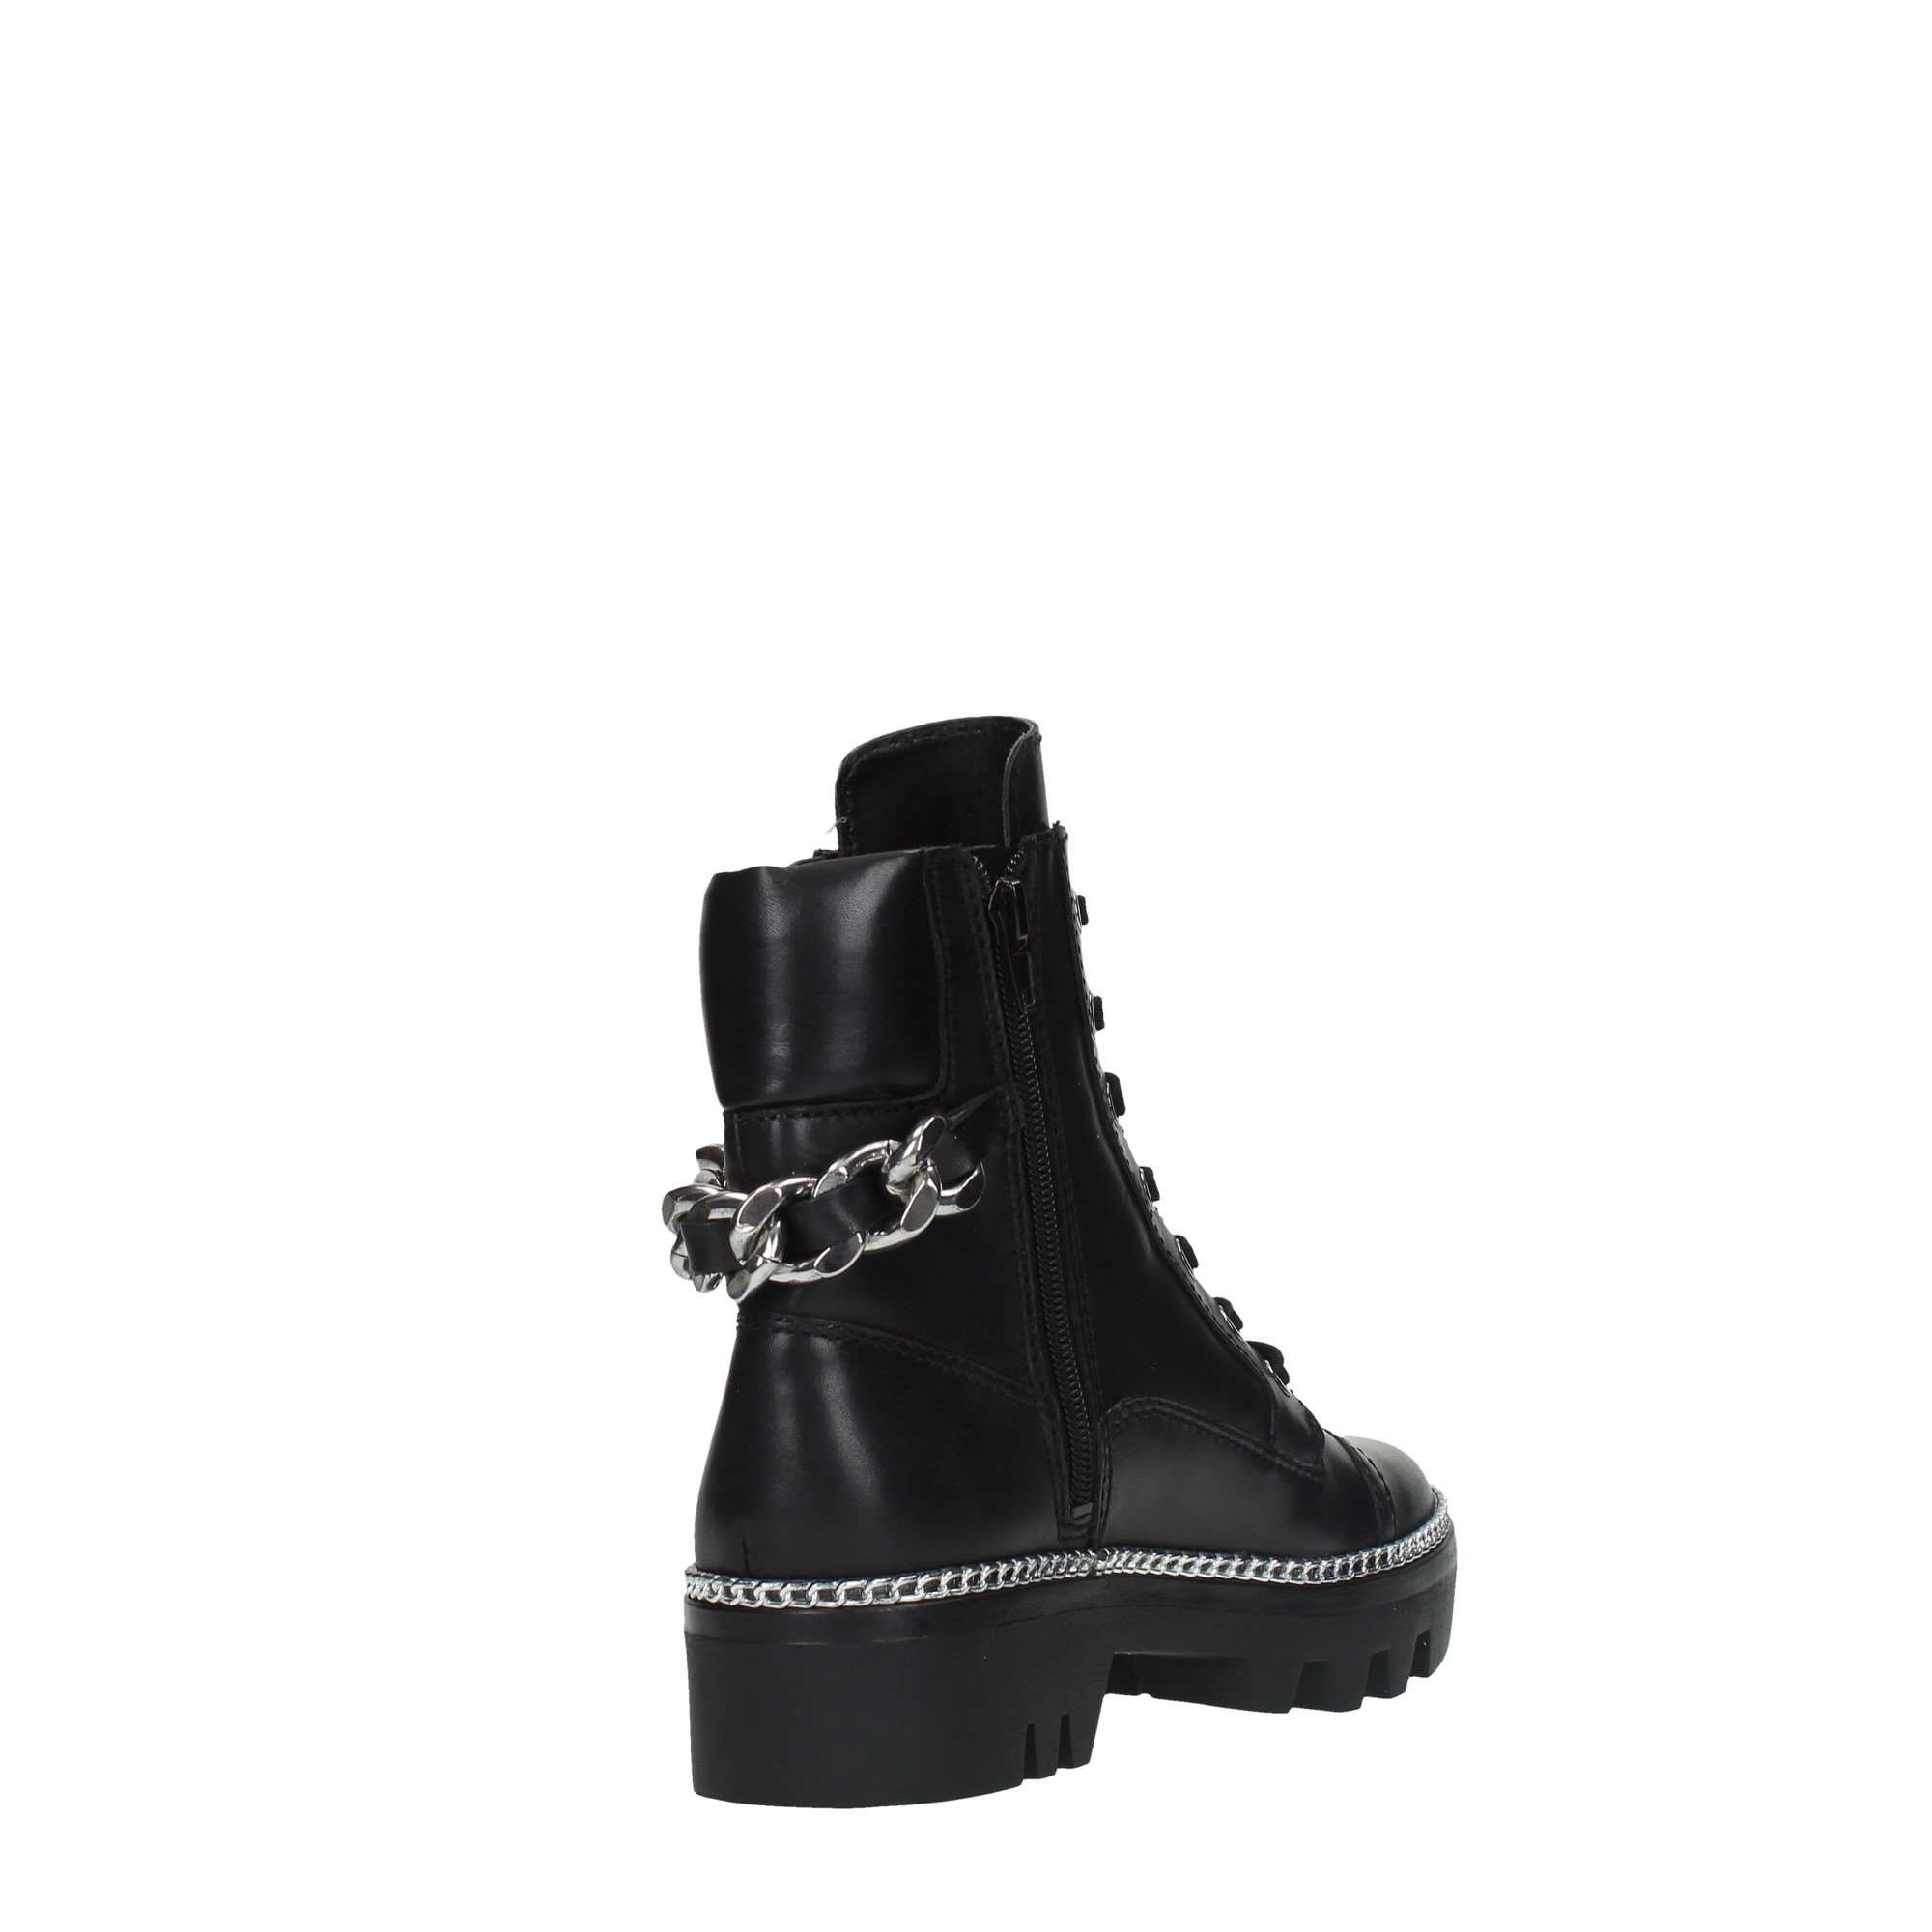 Guess Shoes Women Booties Black FL7DOM